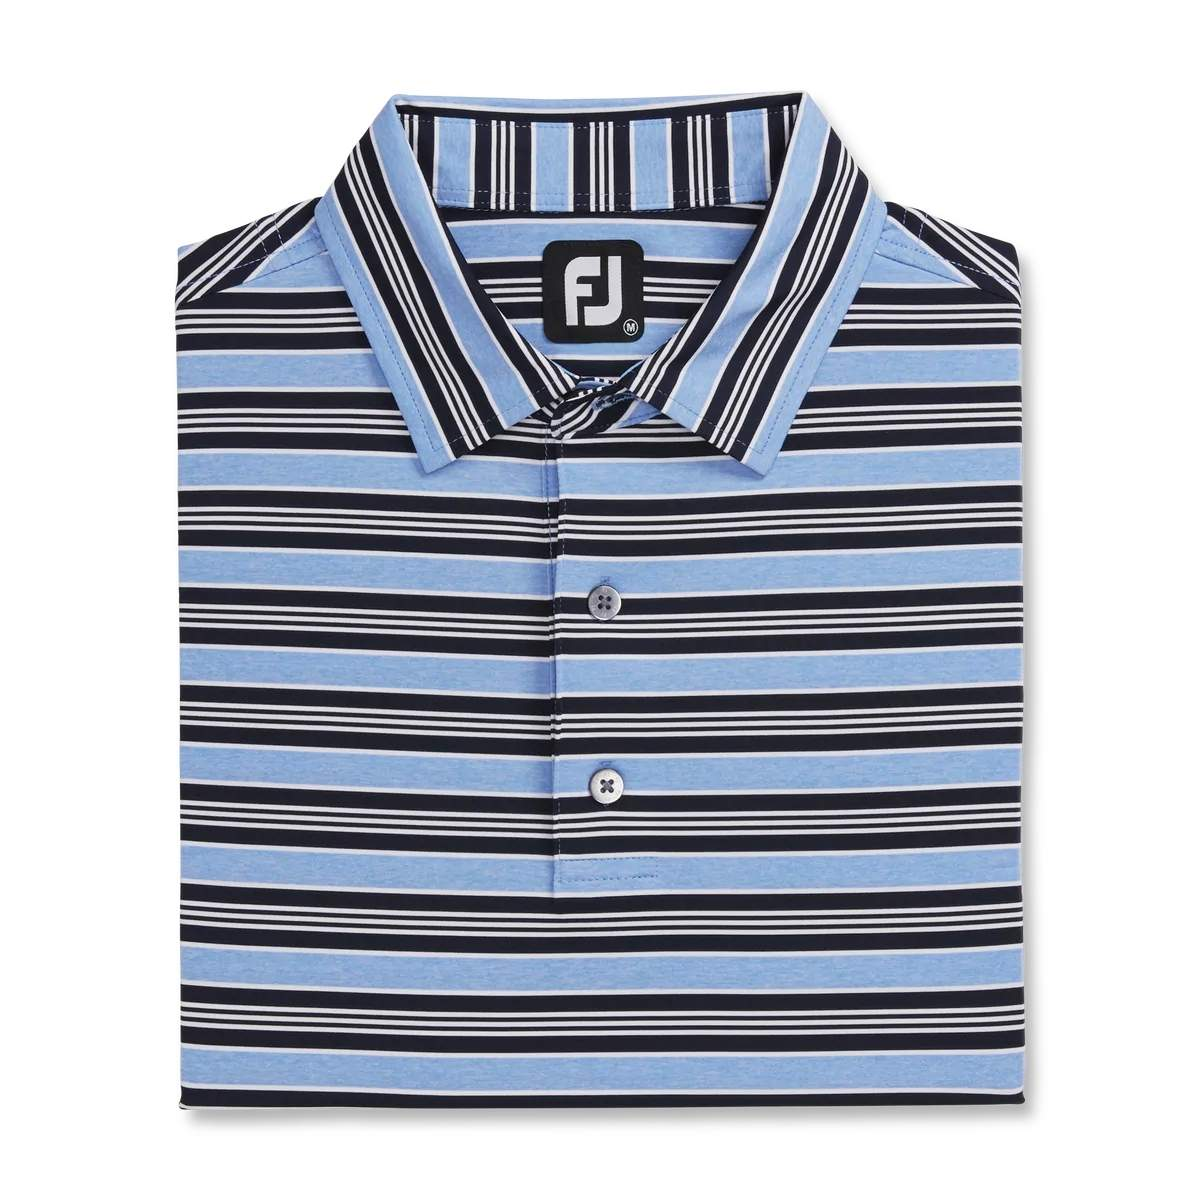 FootJoy Men's Lisle Traditional Stripe Lagoon/Navy/White Polo